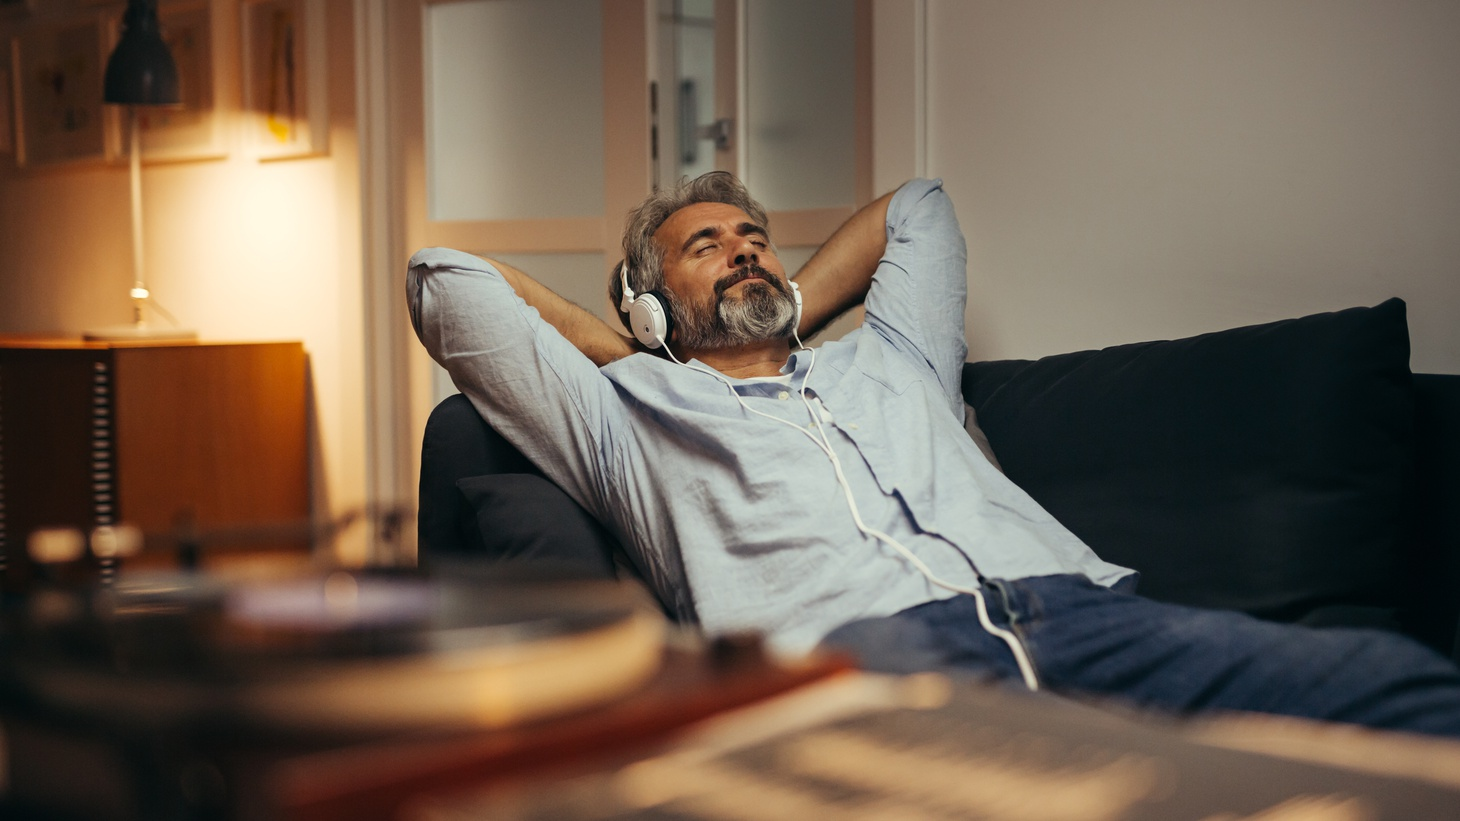 From babies to the elderly, music touches our emotions and lifts our spirits. A familiar melody can transport us back to a time and place. So how does the brain process music, and can music boost our cognitive performance?